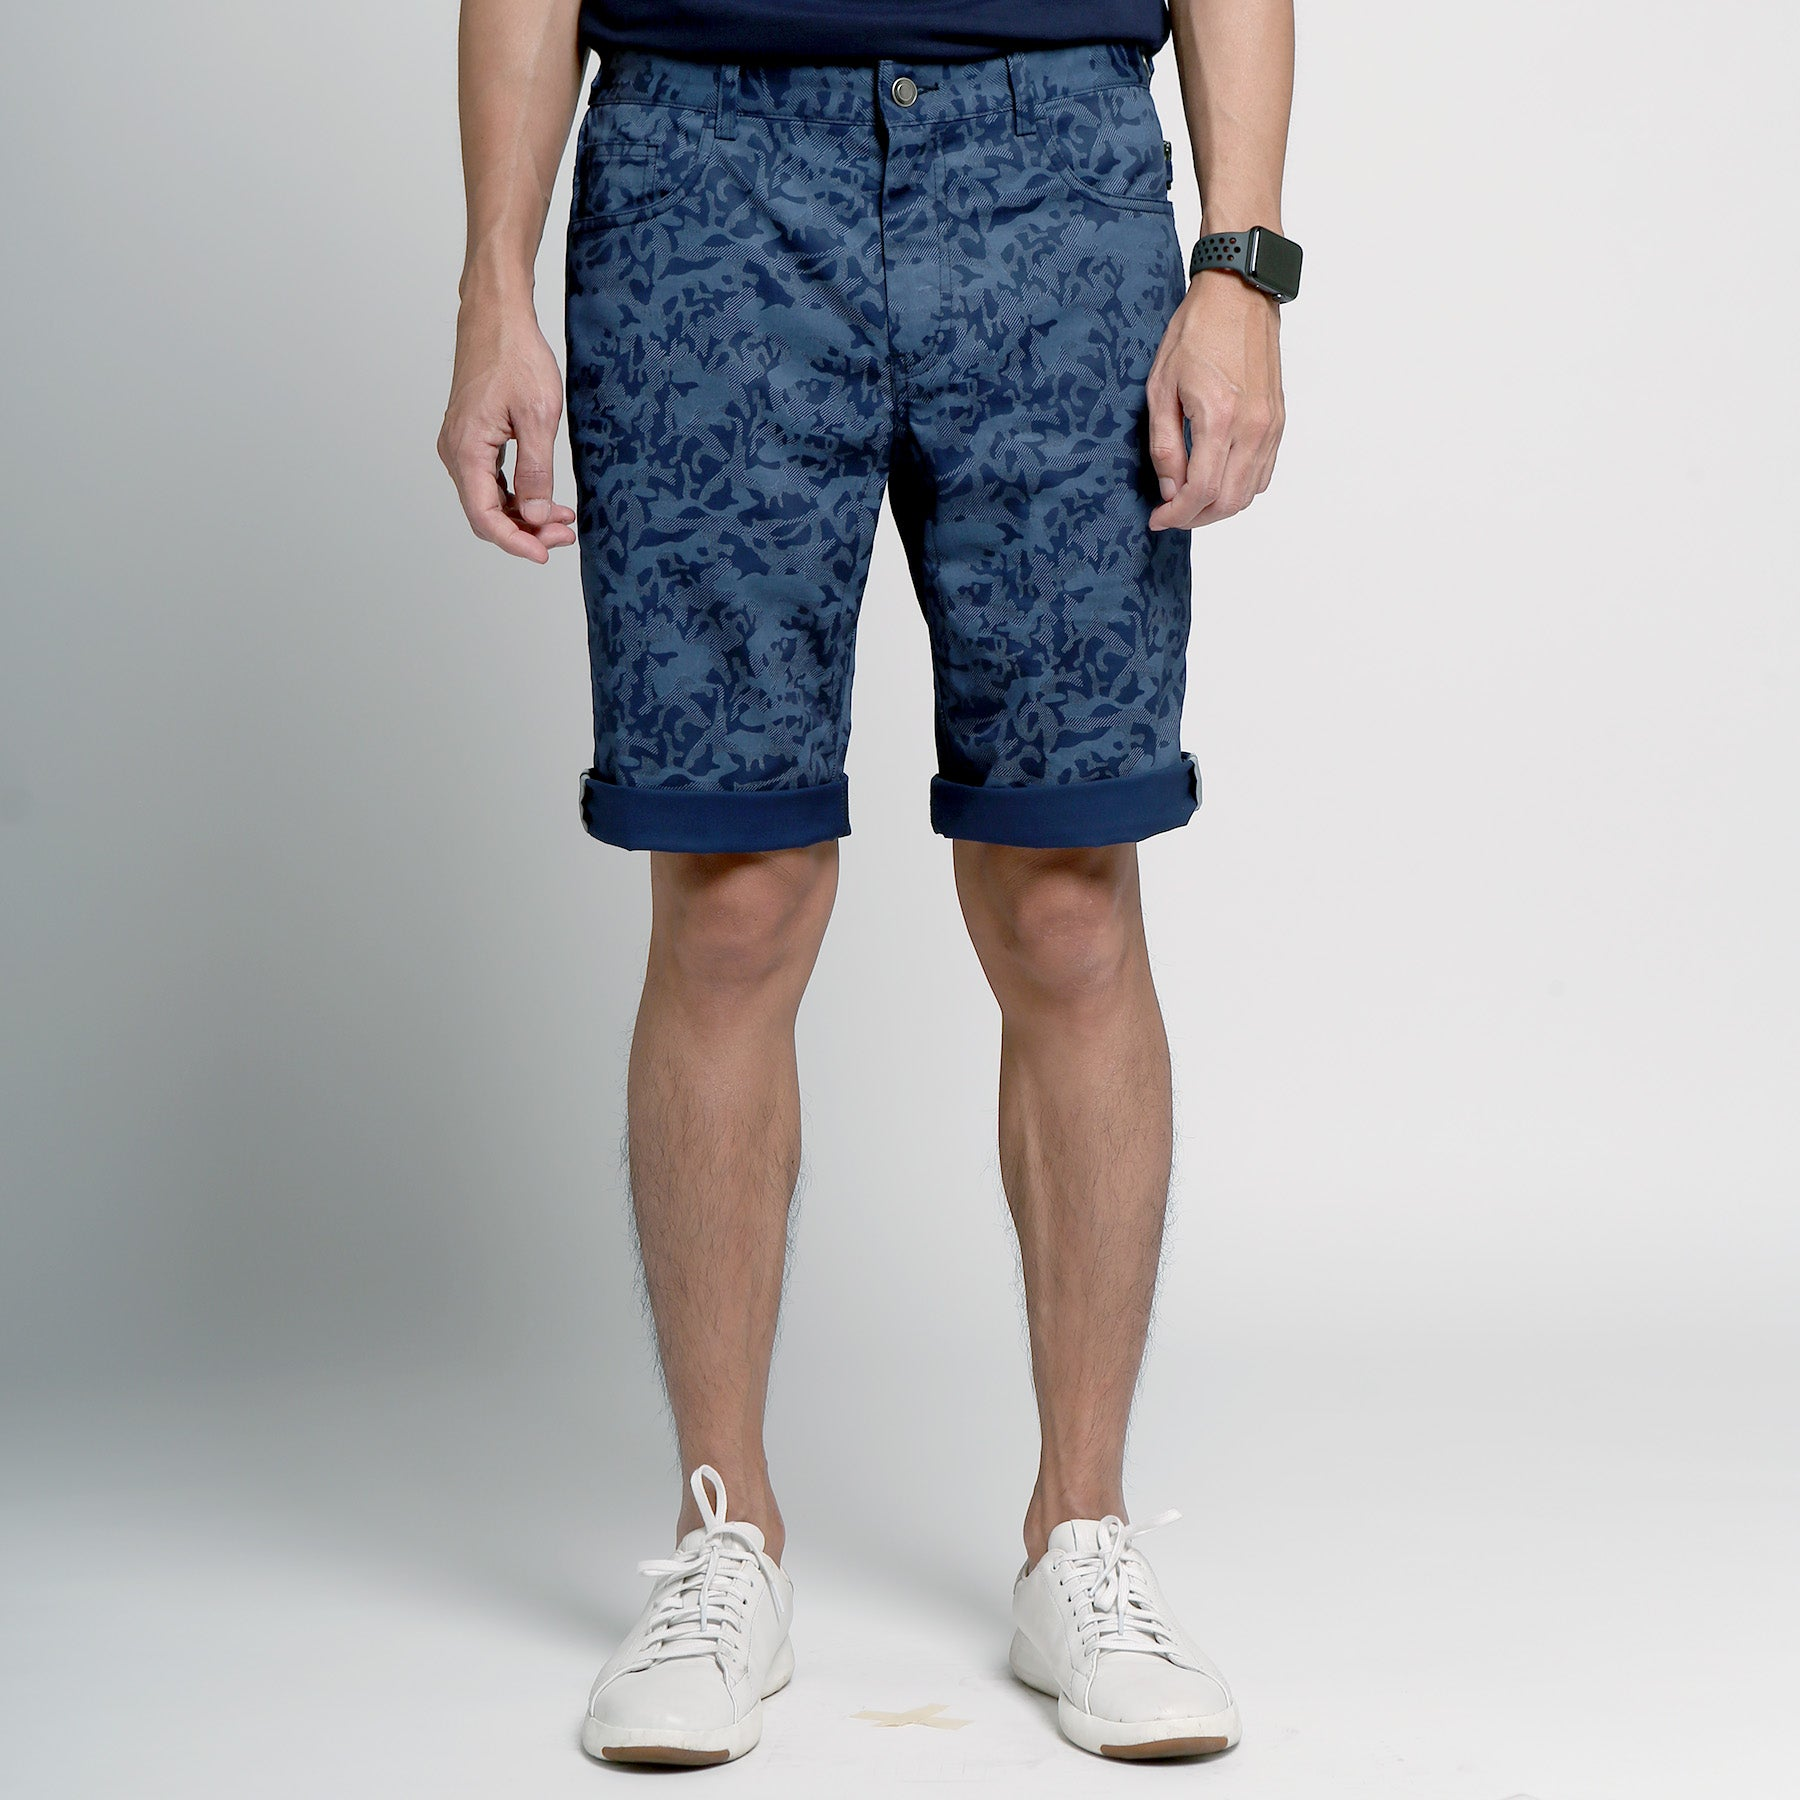 FRIDAY PEOPLE URBAN SHORTS BLUE CAMO CYCLING